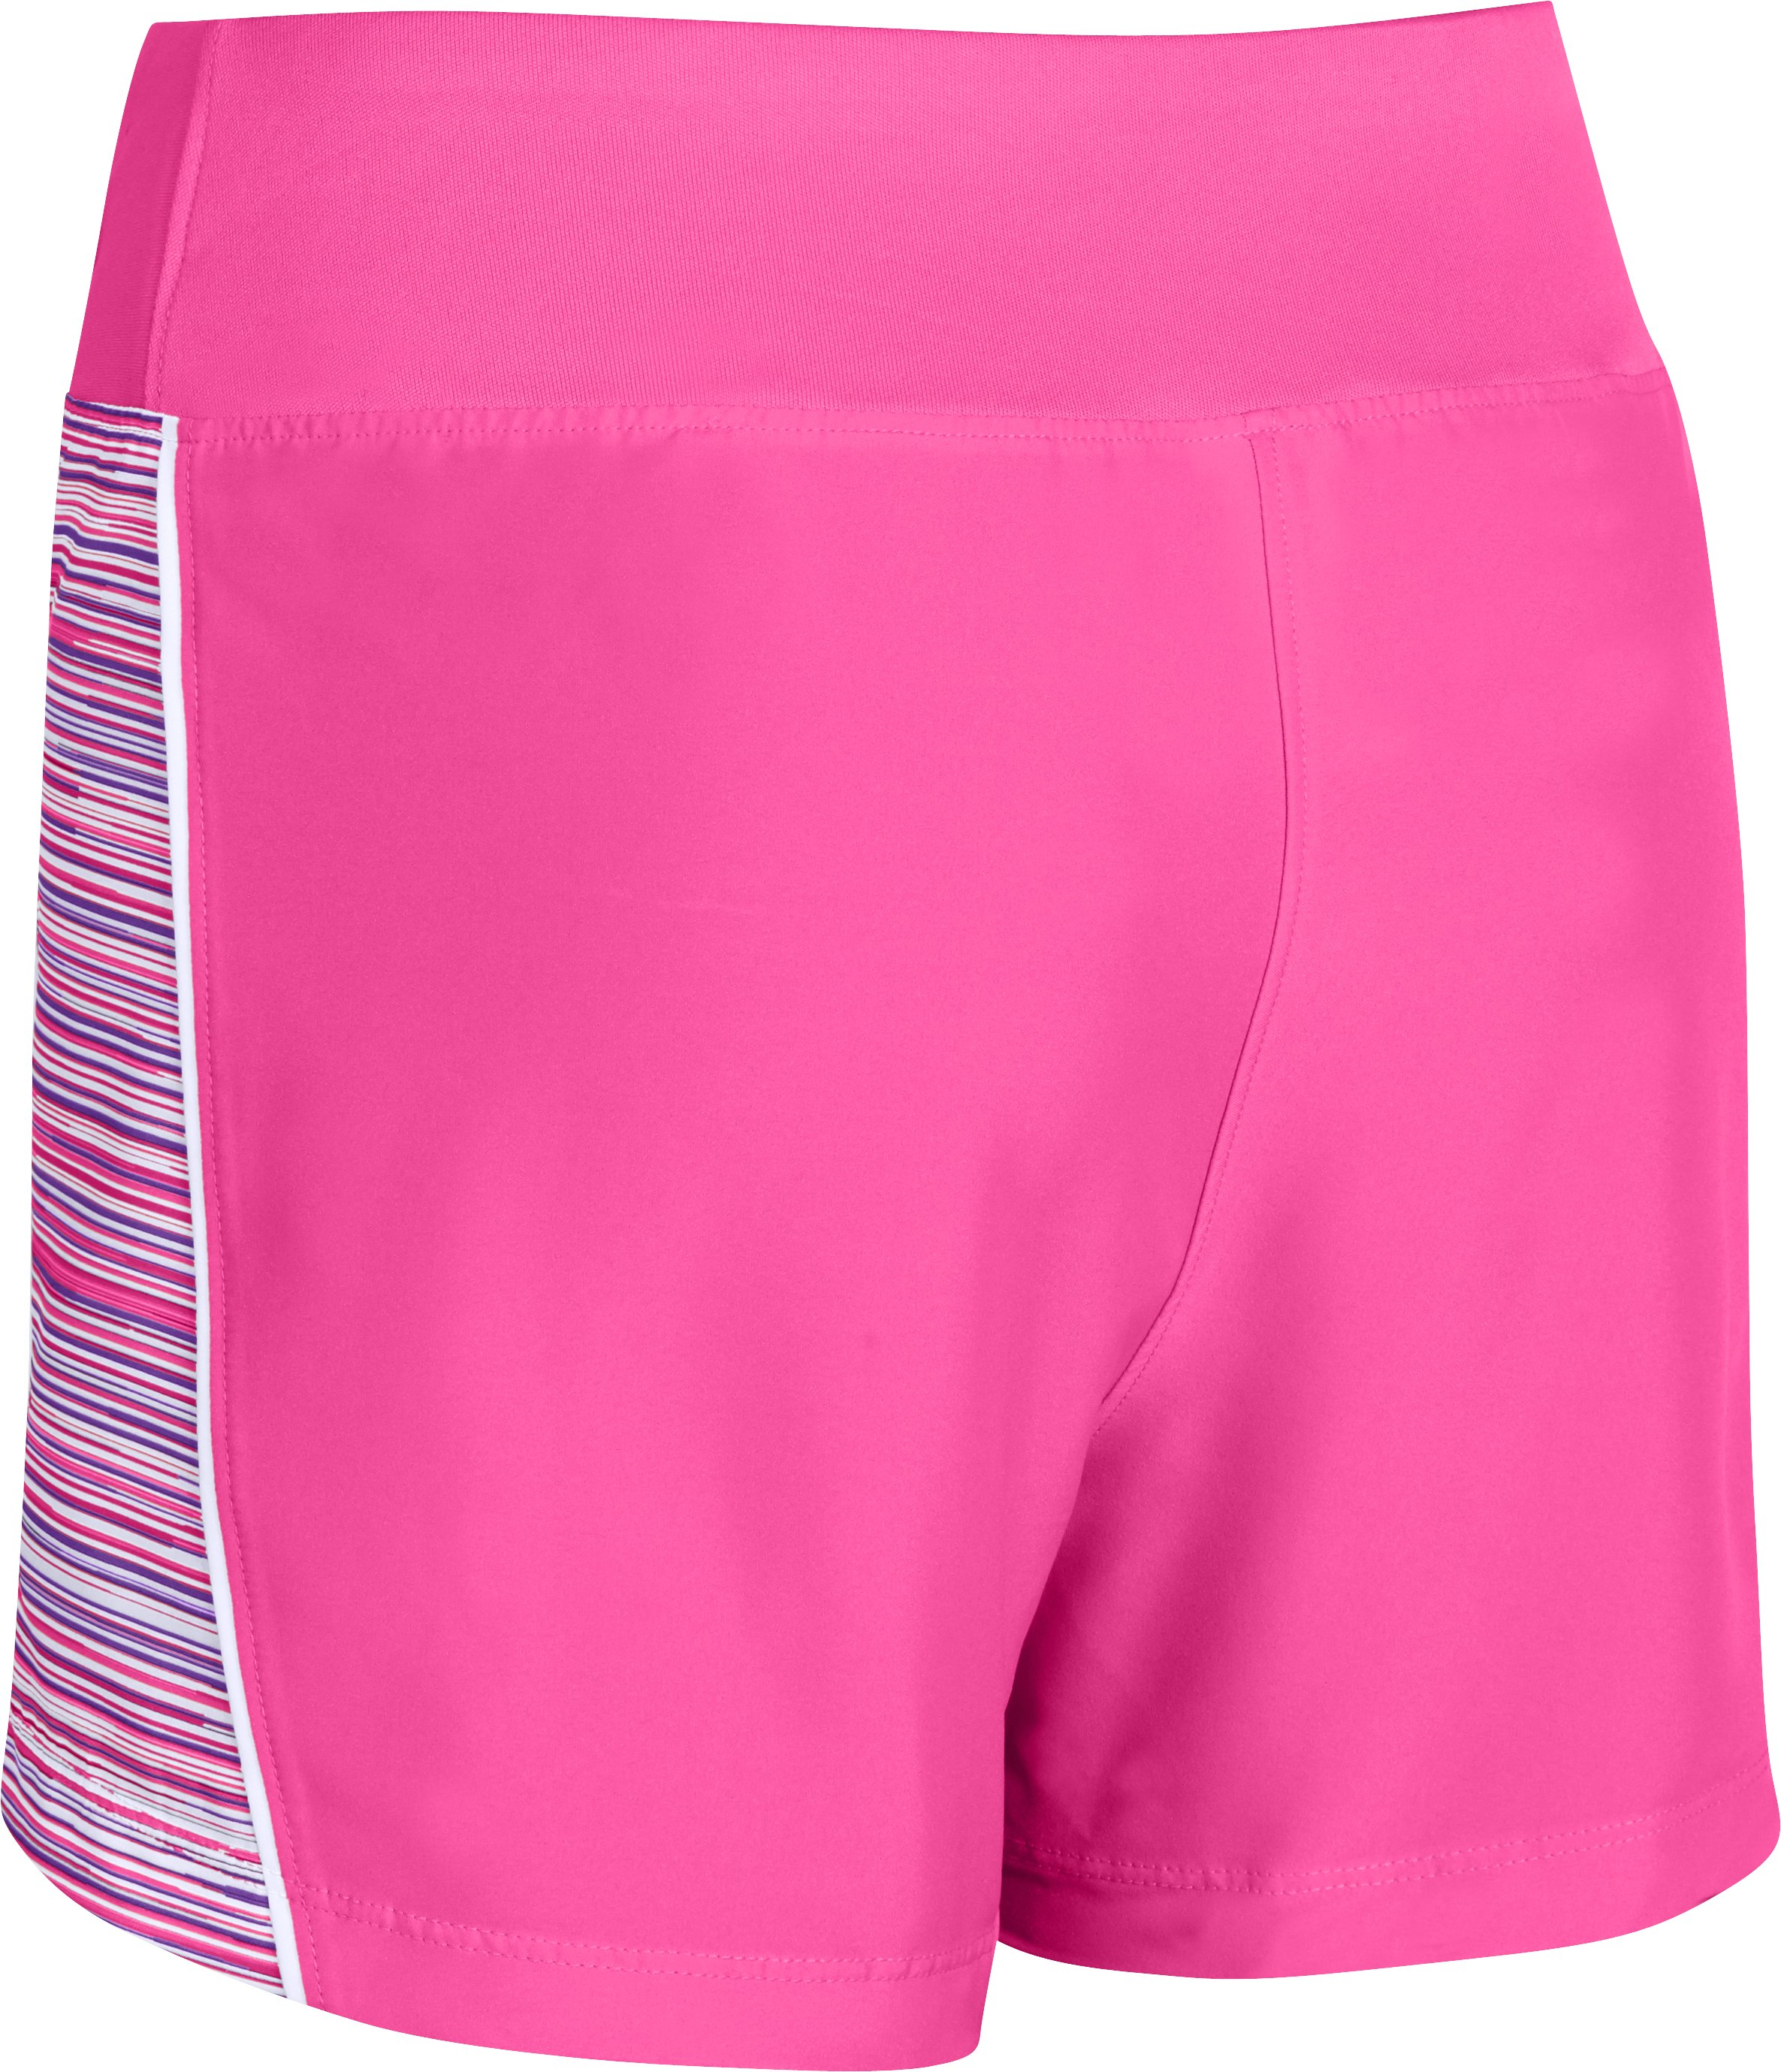 "Girls' UA Move It 3"" Shorts, CHAOS, undefined"